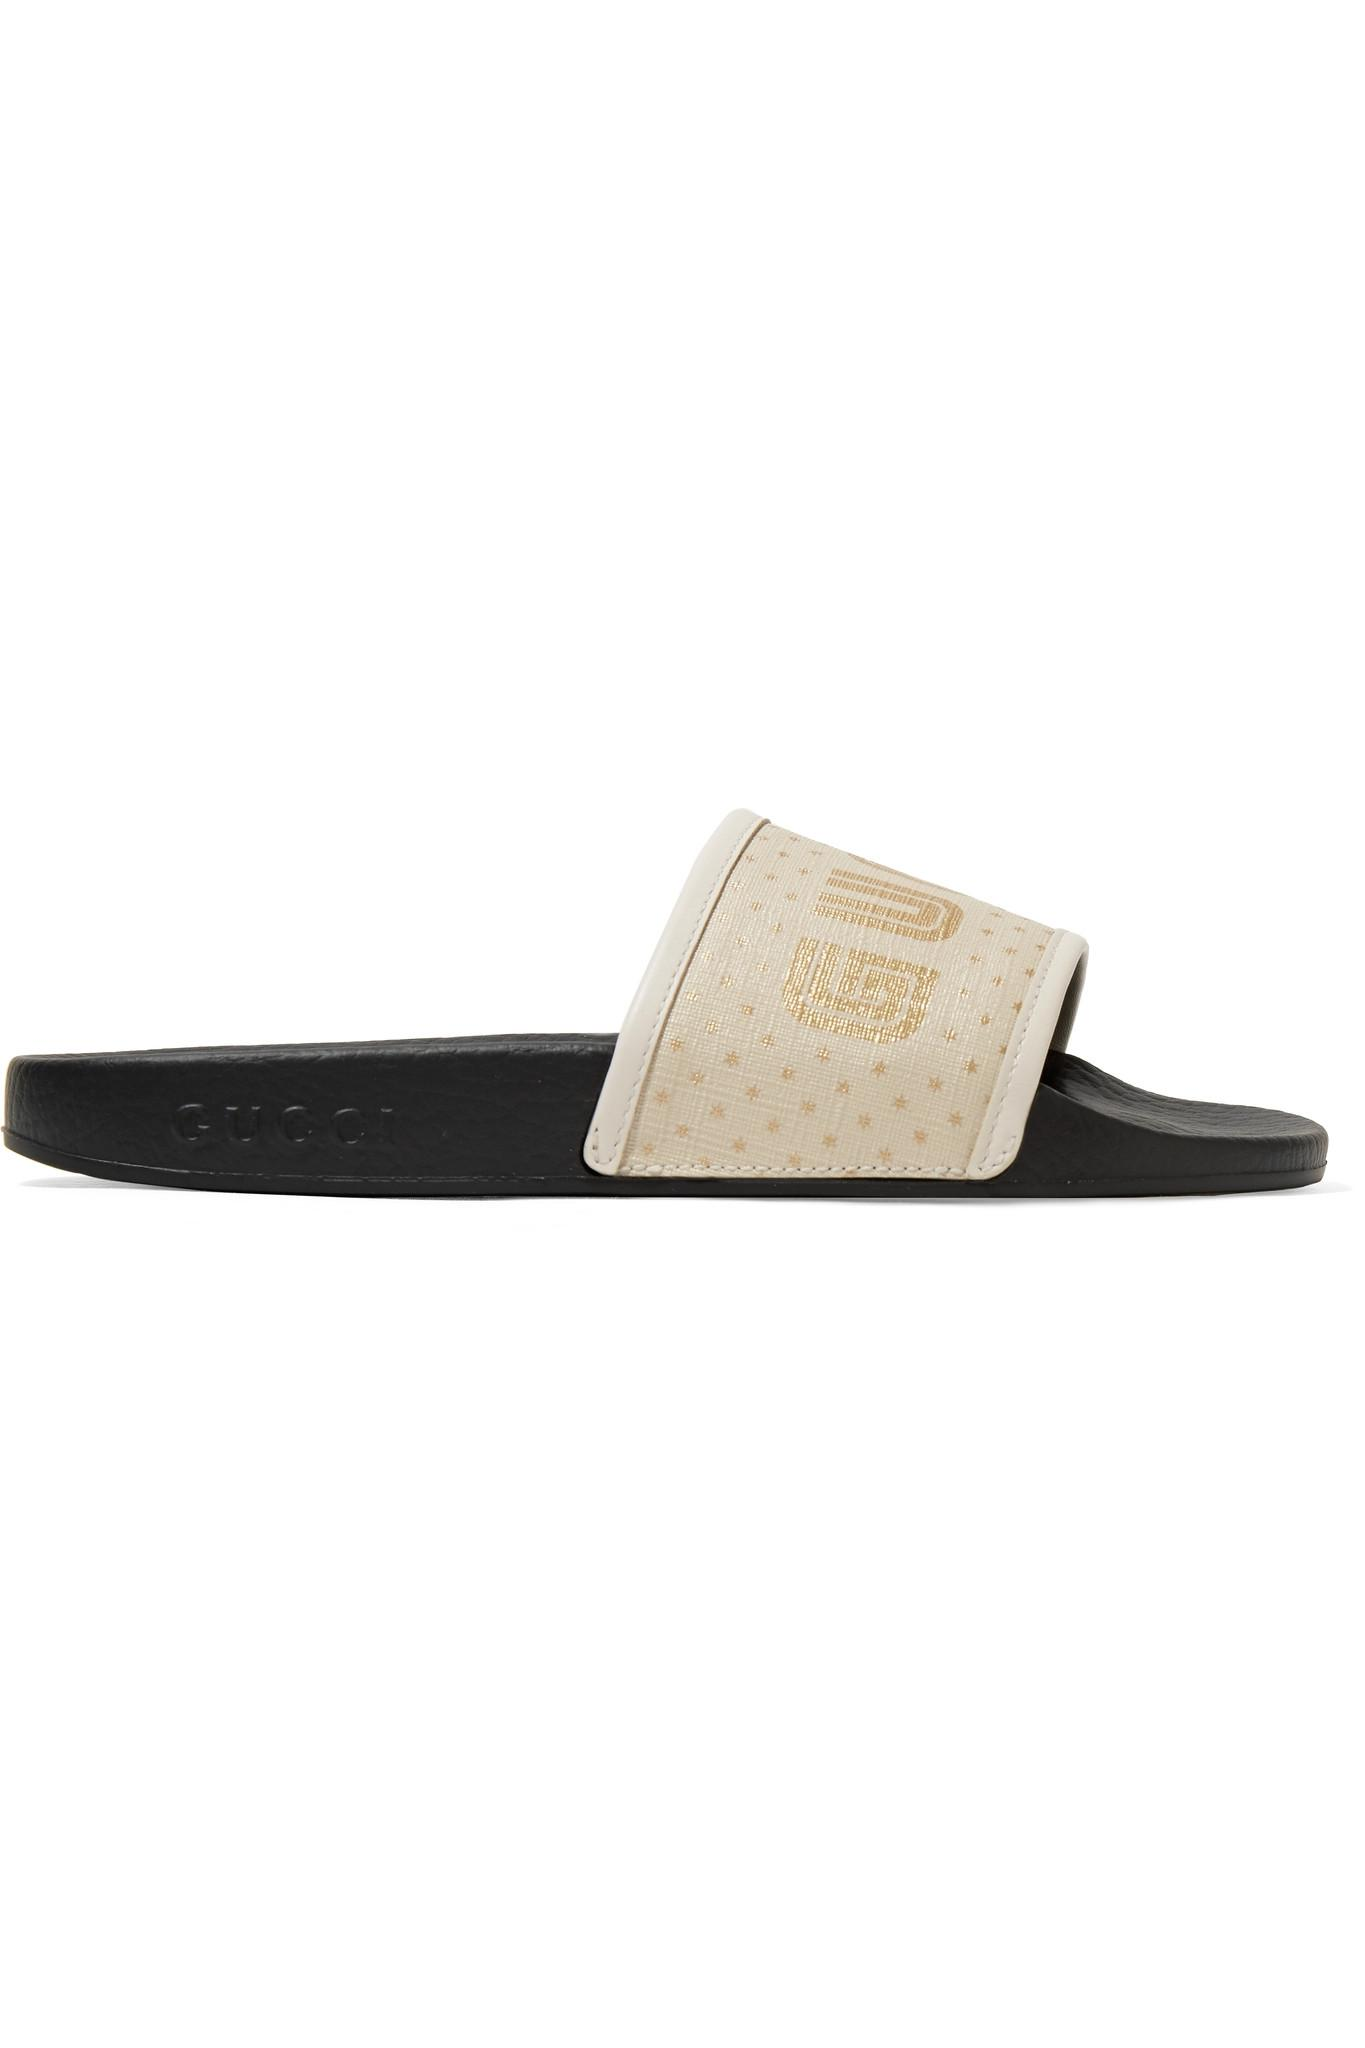 ad4e91f6a8 Lyst - Gucci Pursuit Leather-trimmed Logo-print Canvas Slides in Black